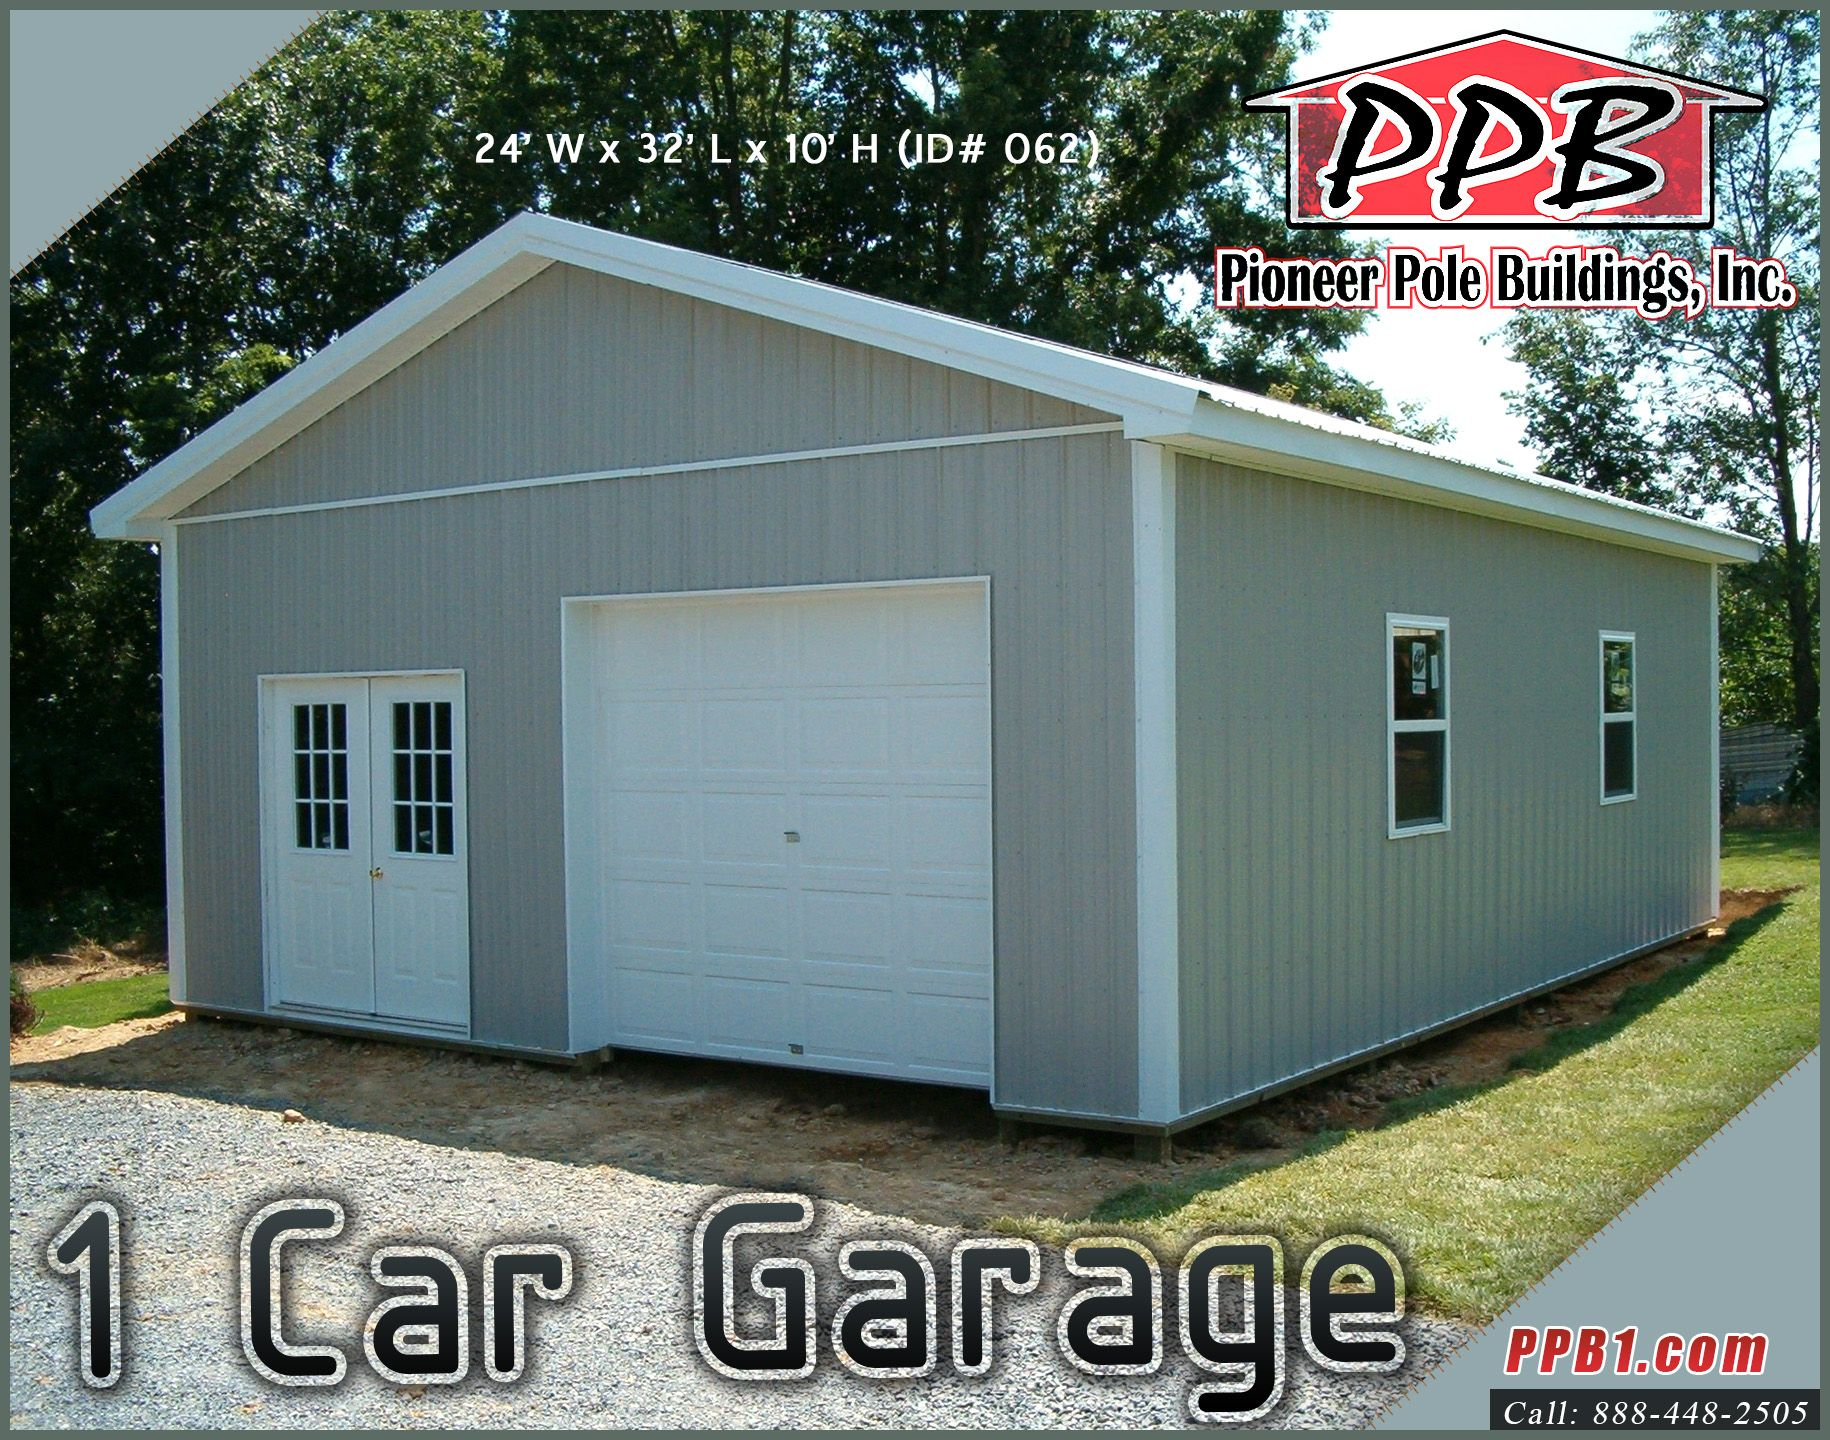 1 Car Garage Dimensions 24 W X 32 L X 10 H Id 062 24 Standard Trusses 4 On Center 4 12 Pitch Residential Garage Doors Garage Dimensions Garage Plans